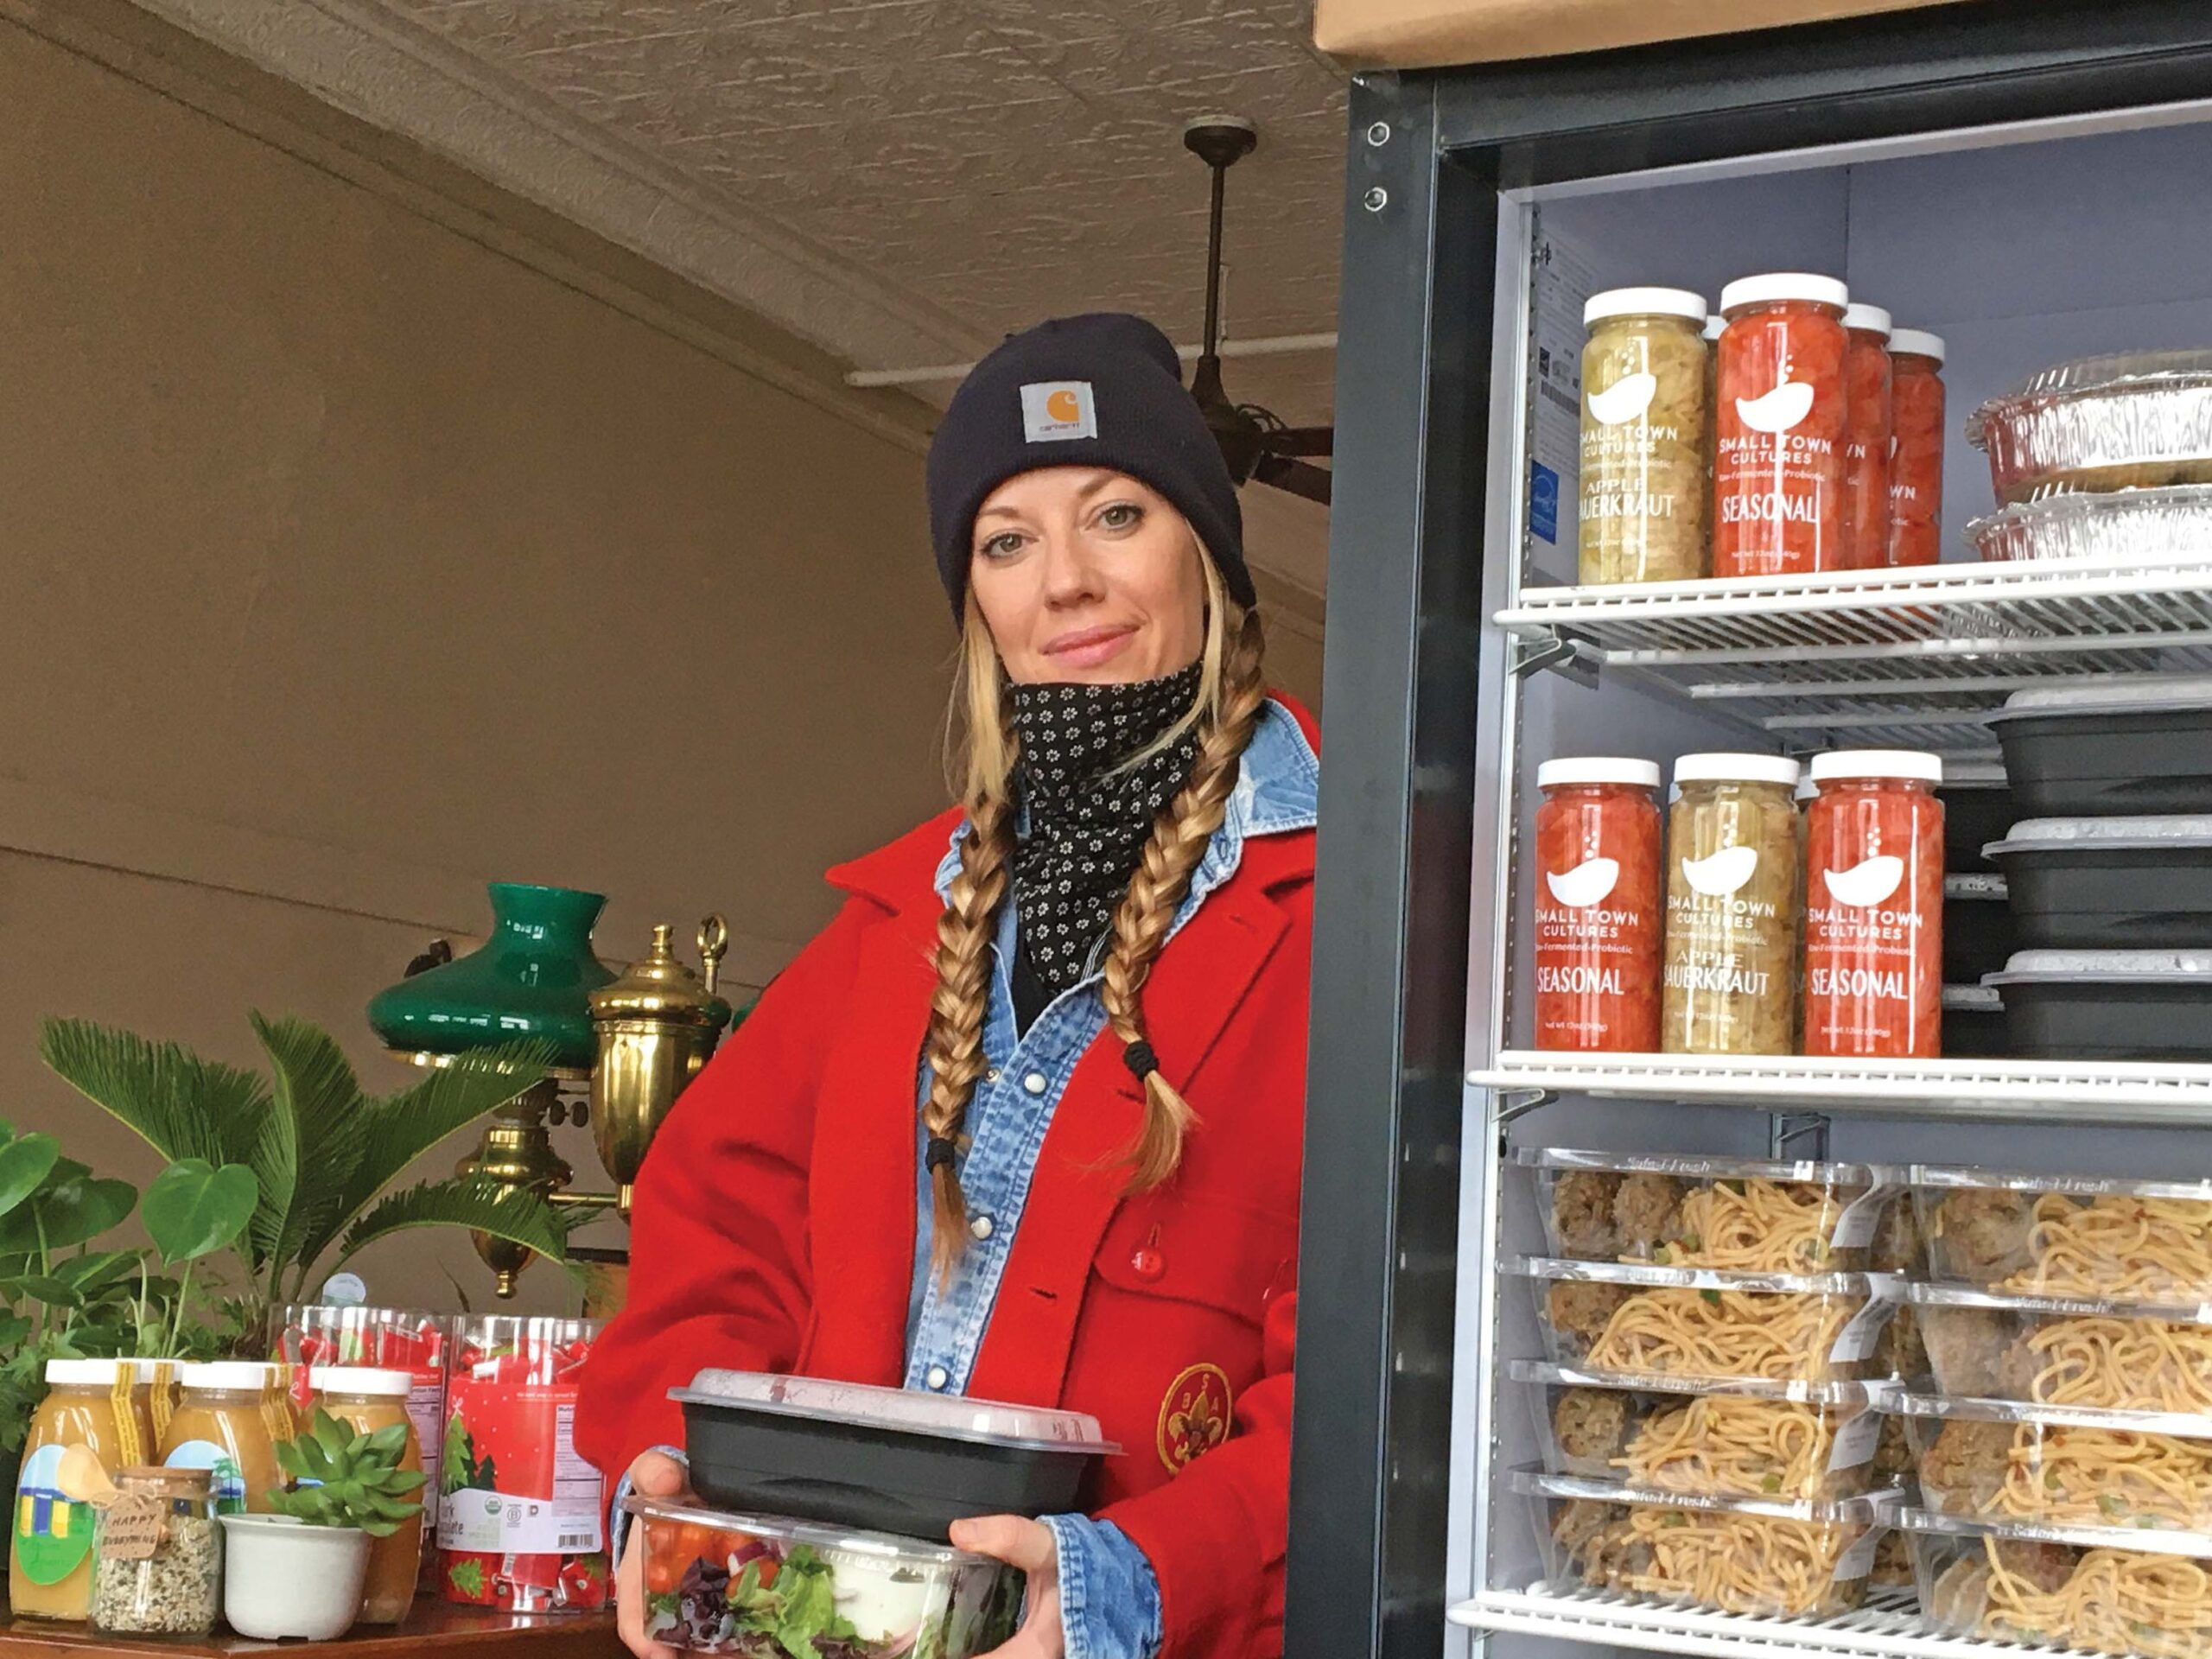 The Giving Fridge offers food for the hungry